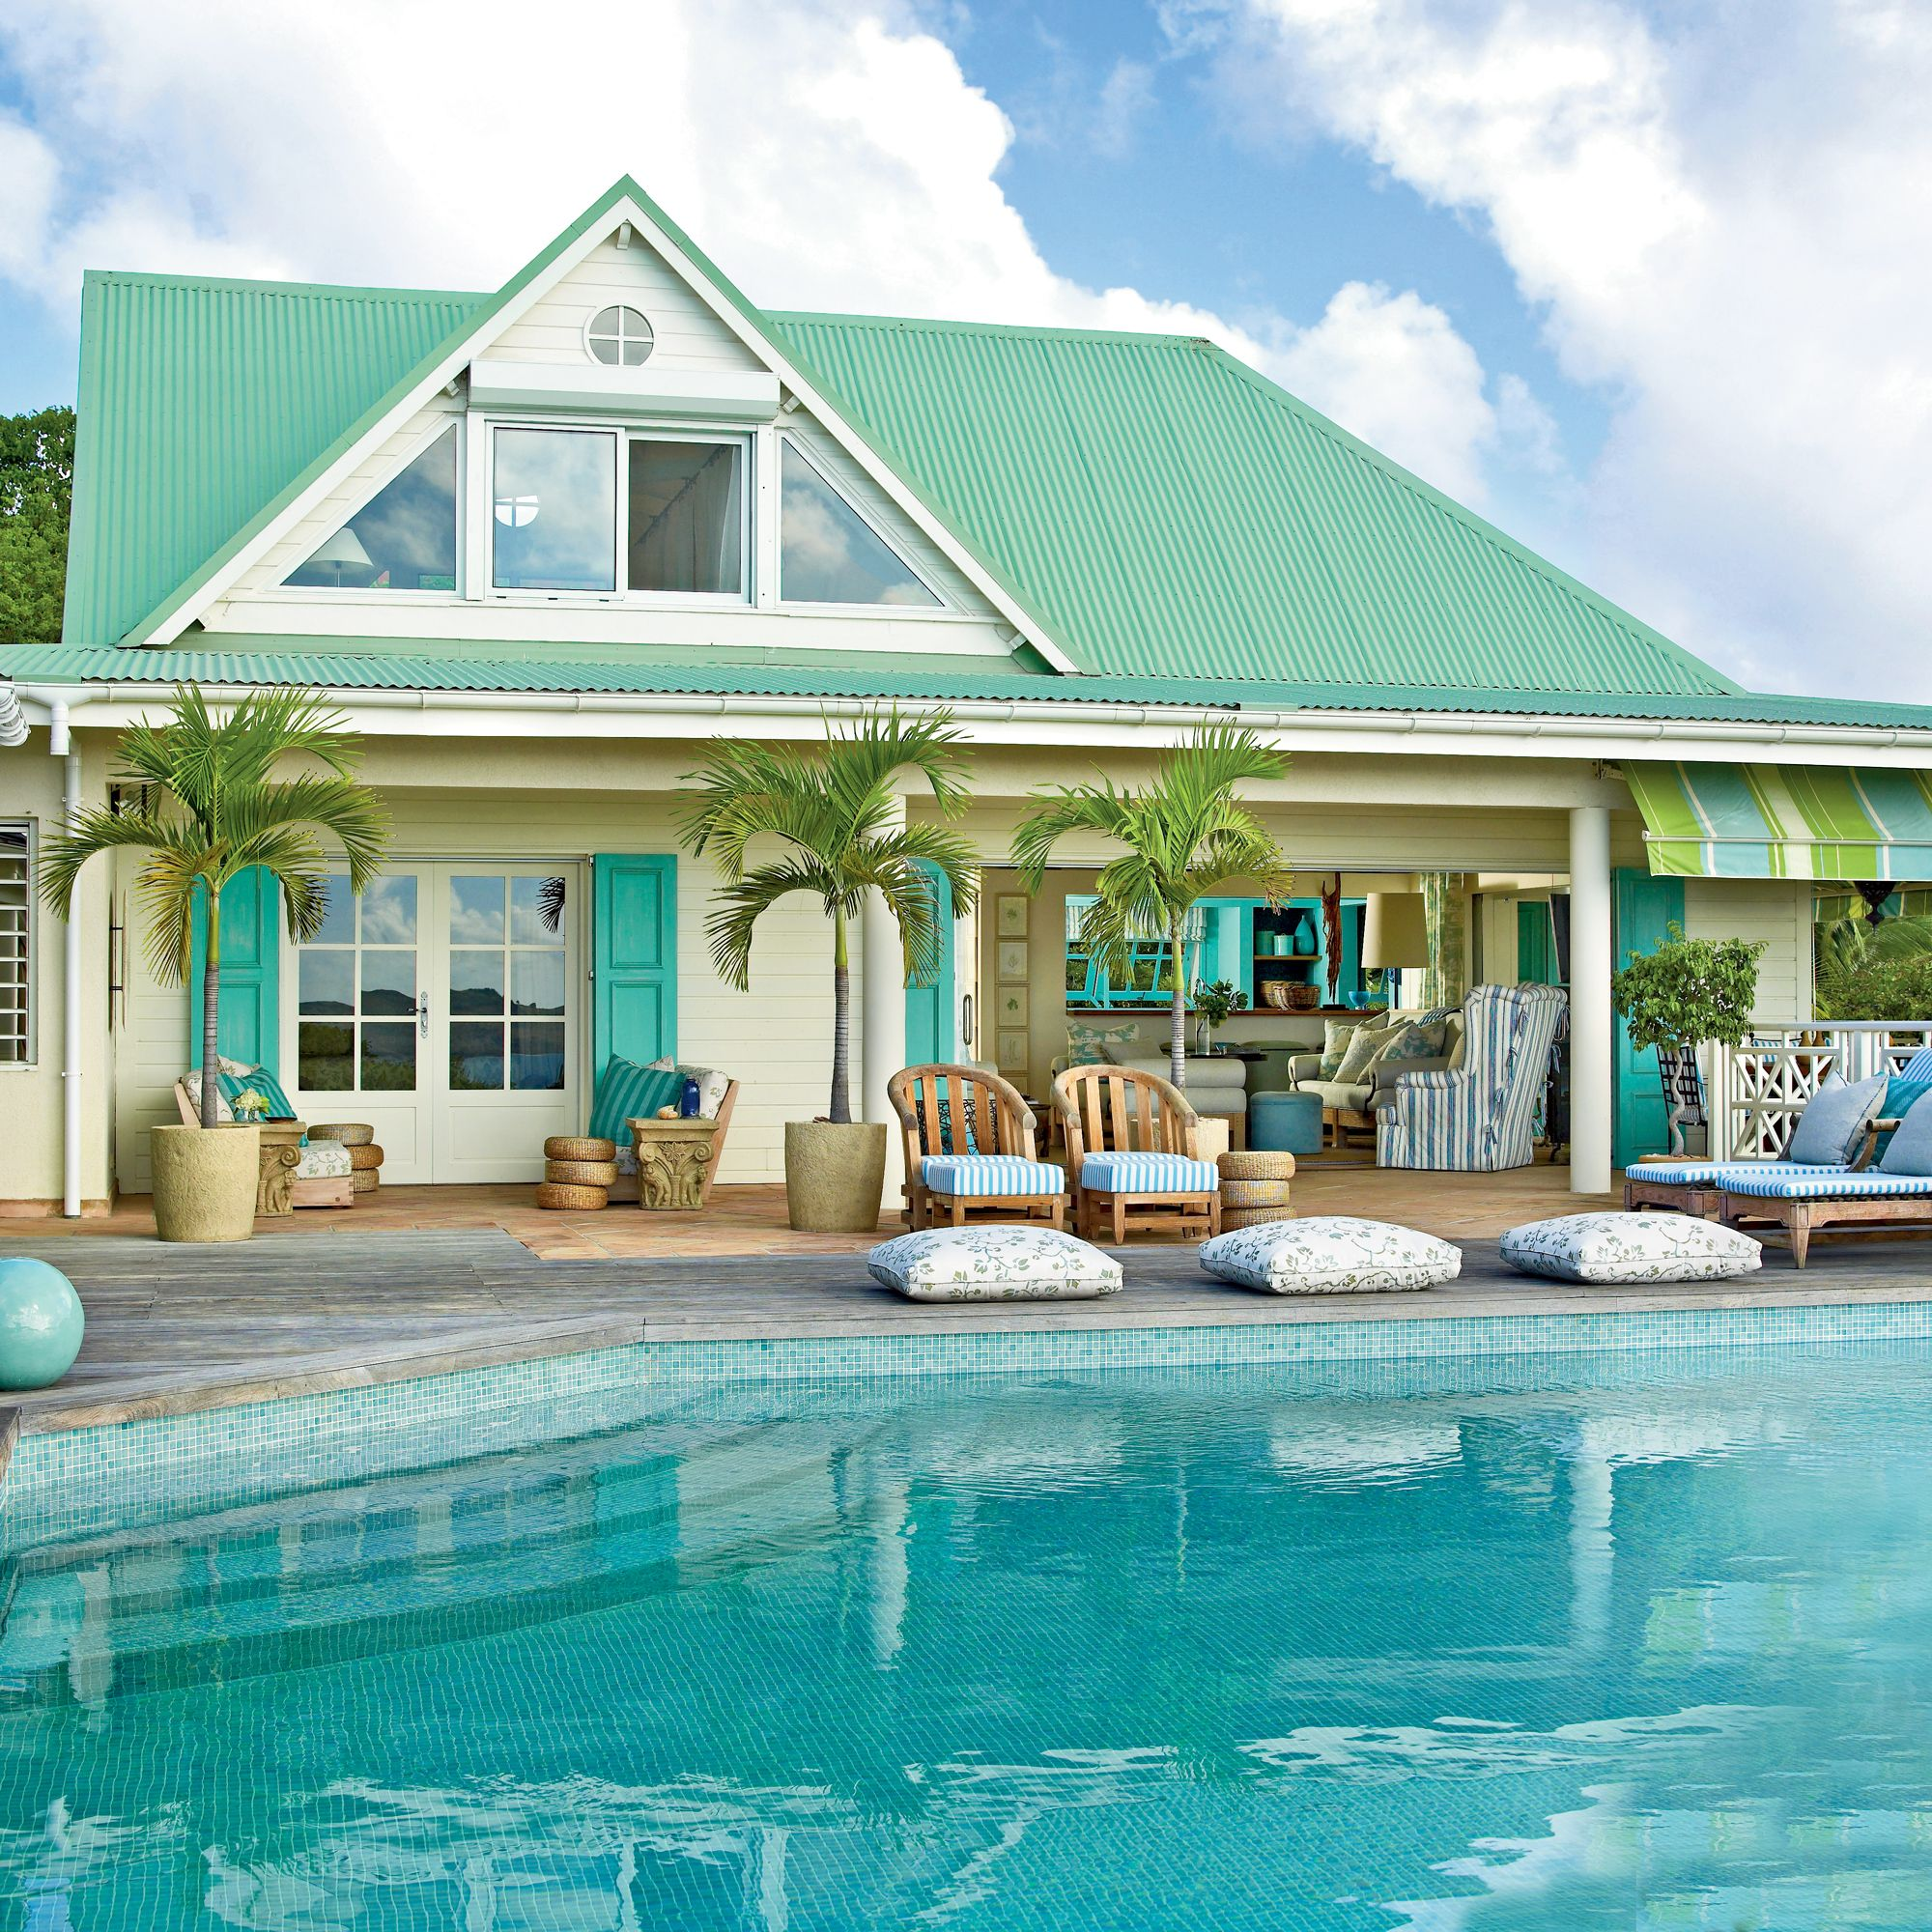 bungalow blue cottages skies fl rentals southern by destin vacation nantucket scenic